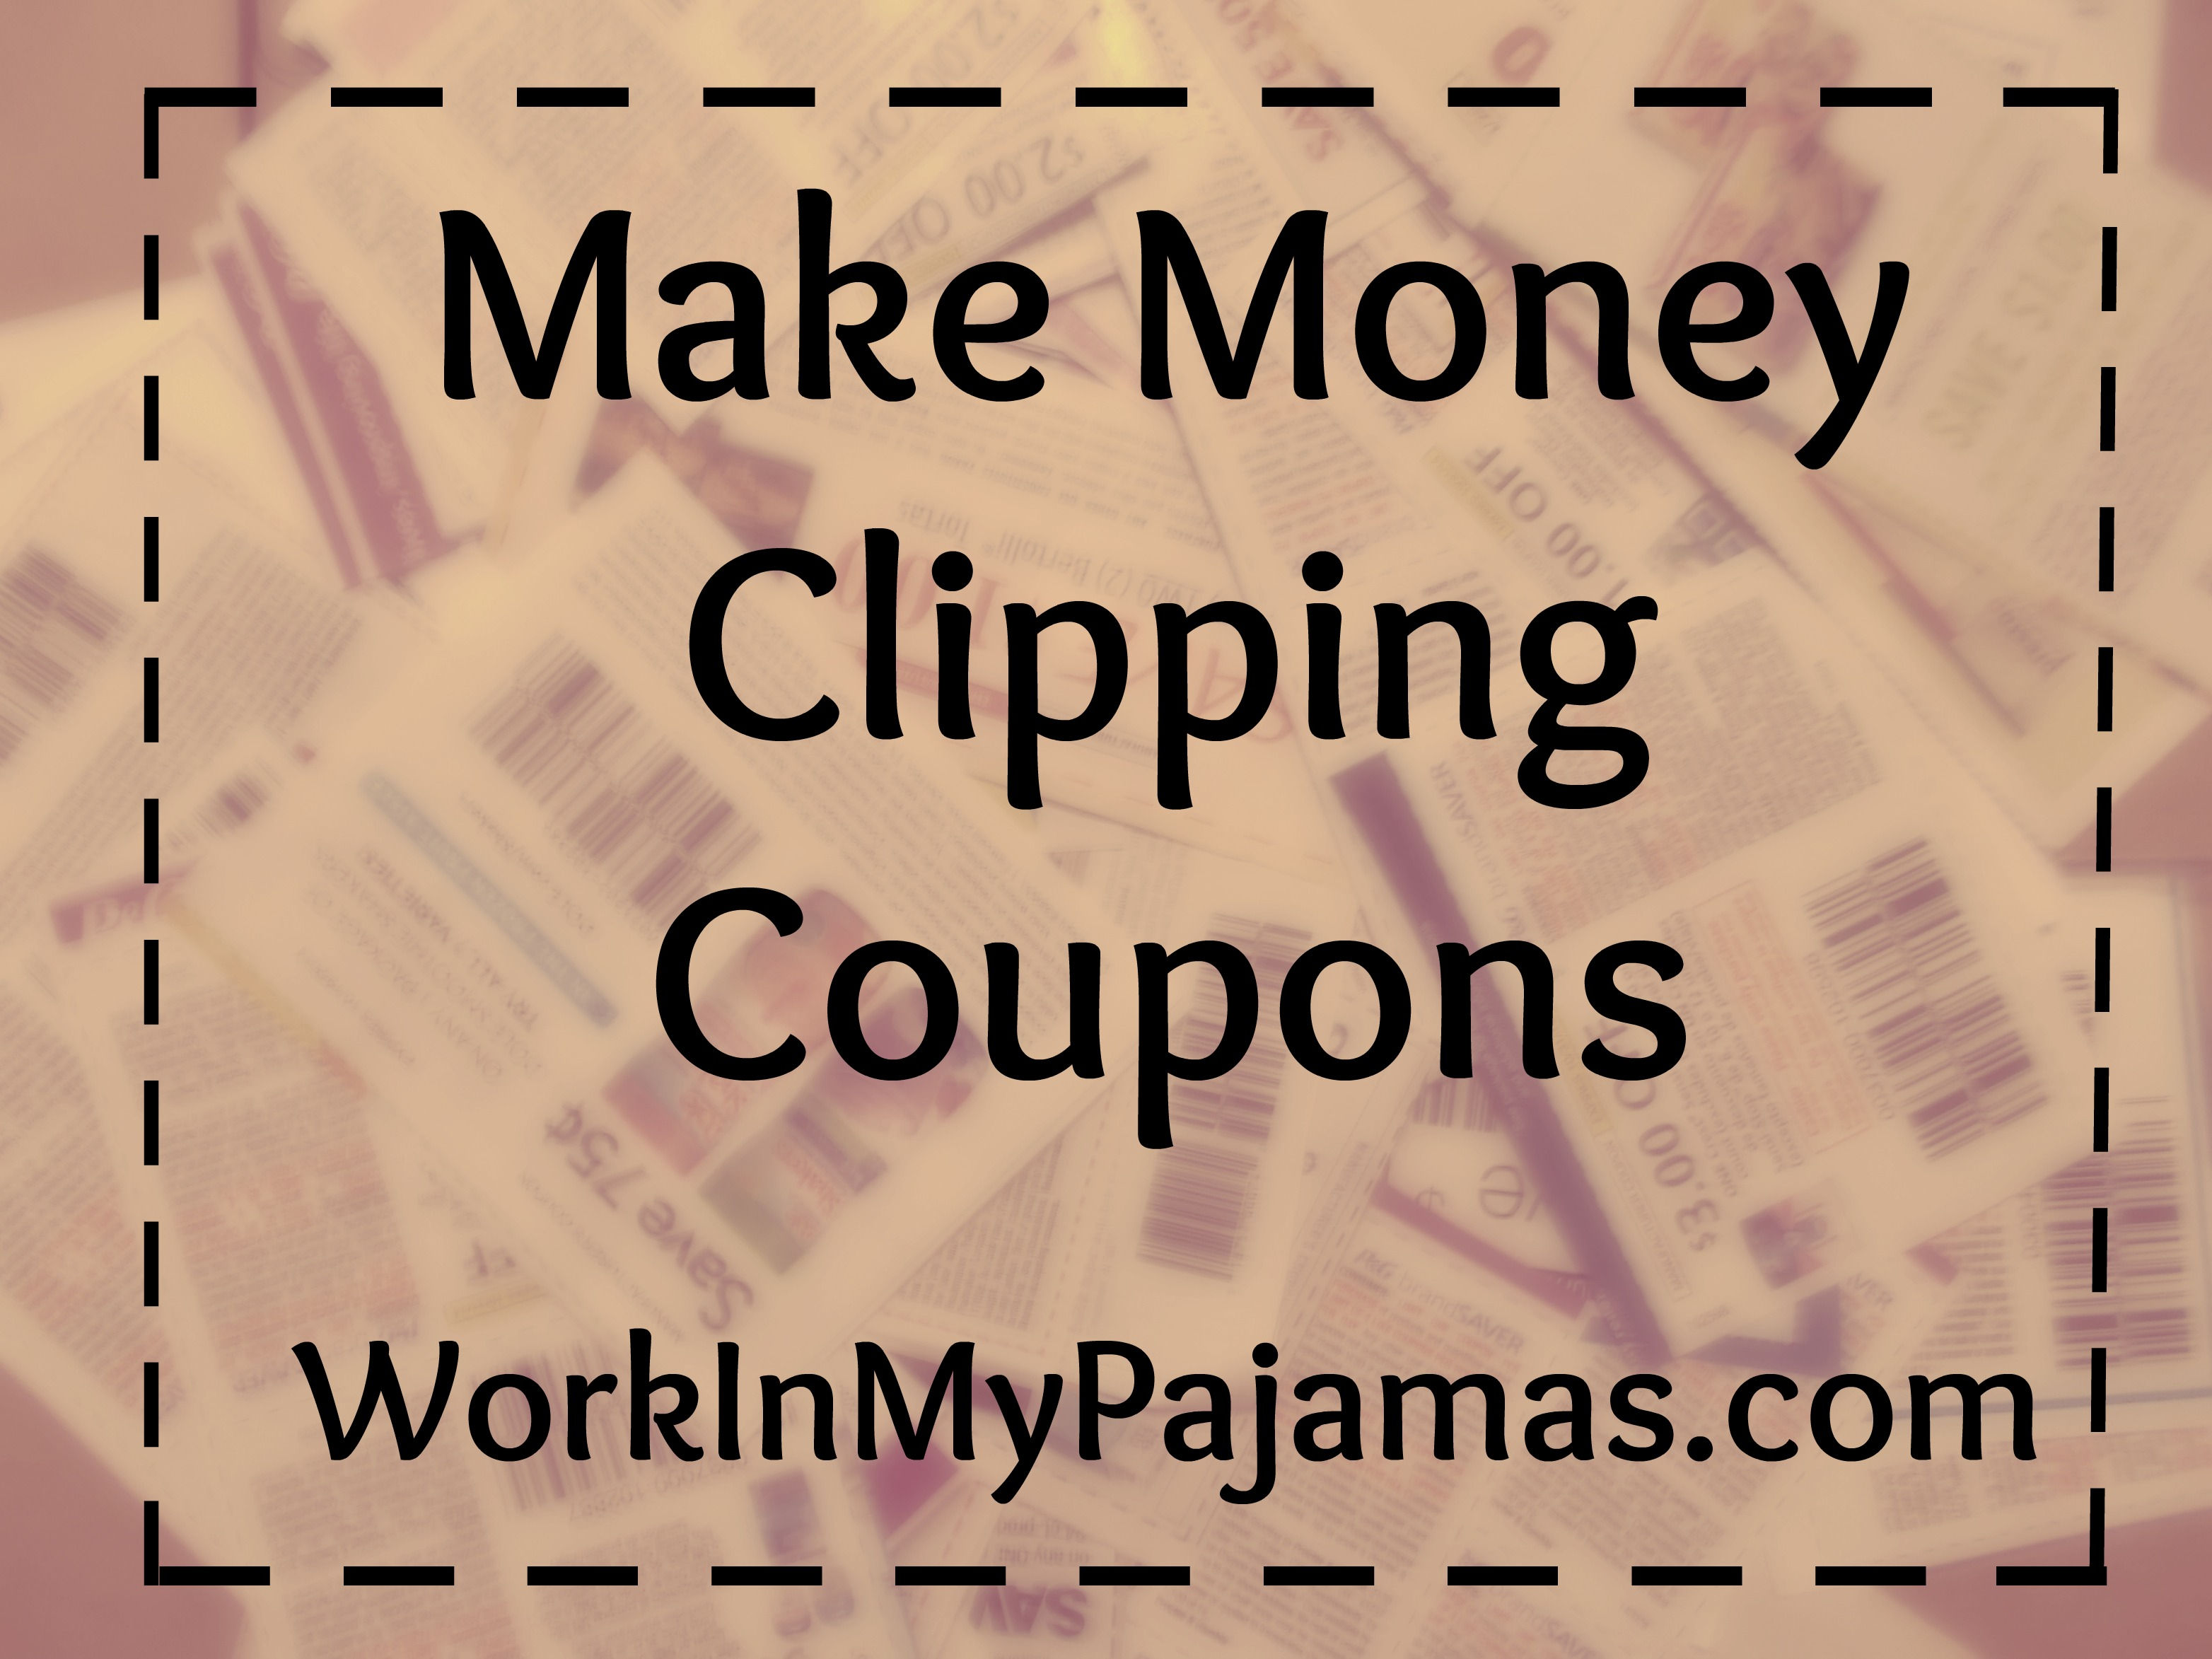 At The Happy Couponer Marketplace we take care of marketing and promotion. We bring in the customers, you just clip those coupons! We'll Help You Sell Coupons Online. Most of our coupons clippers just dive right in and start selling. But, if you're hesitant, don't worry. We'll never leave you all alone and floundering.